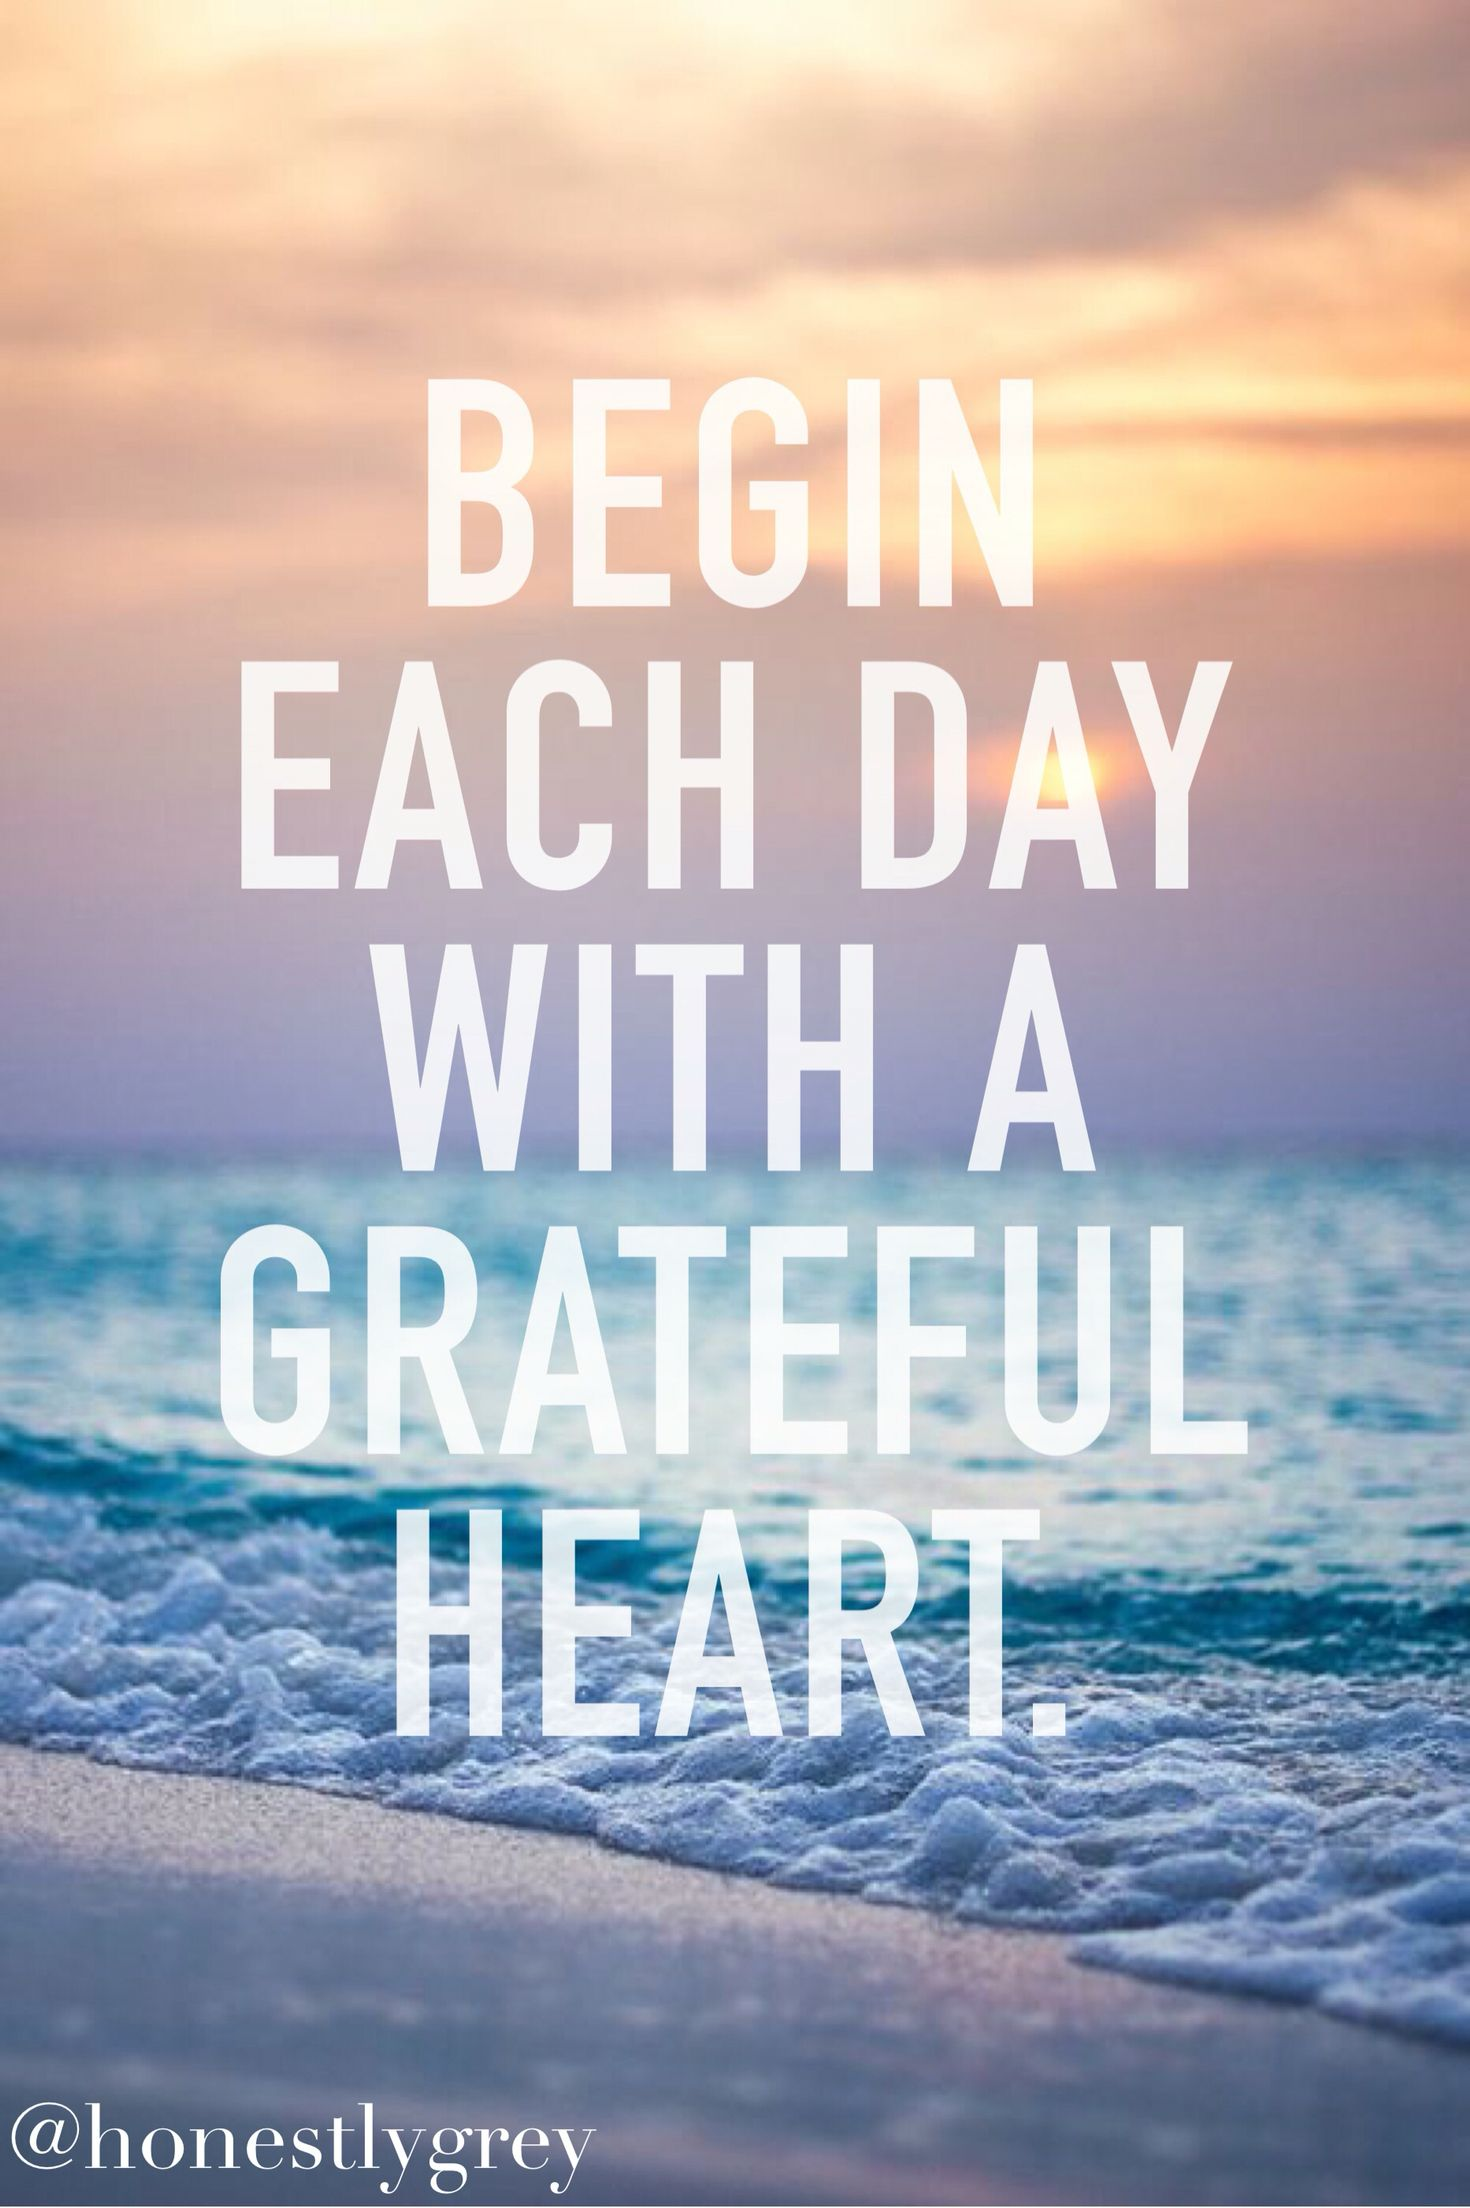 Captivating Begin Each Day With A Grateful Heart. Via @honestlygrey On Instagram